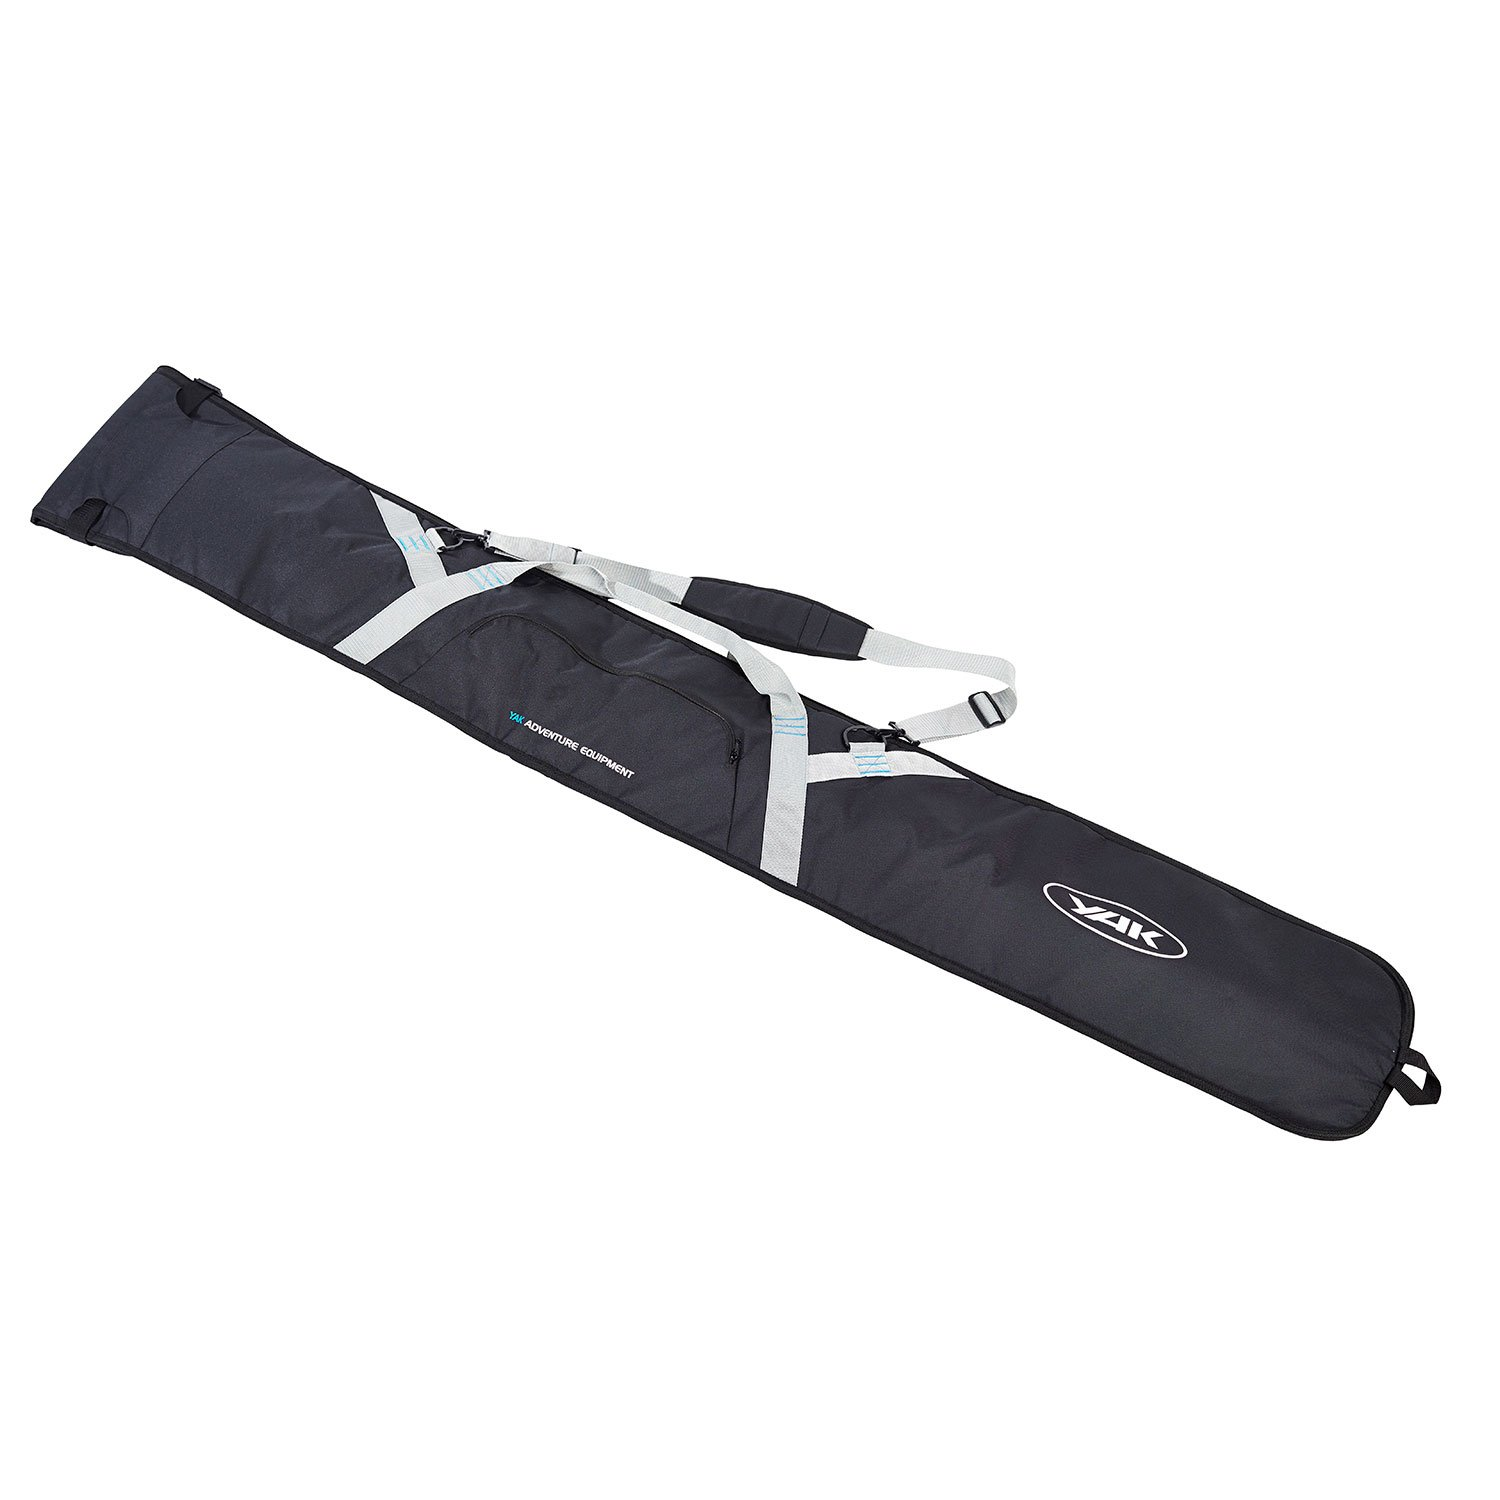 Yak Styrian 2.3m Paddle Bag in BLACK 2744: Amazon.es: Deportes y ...